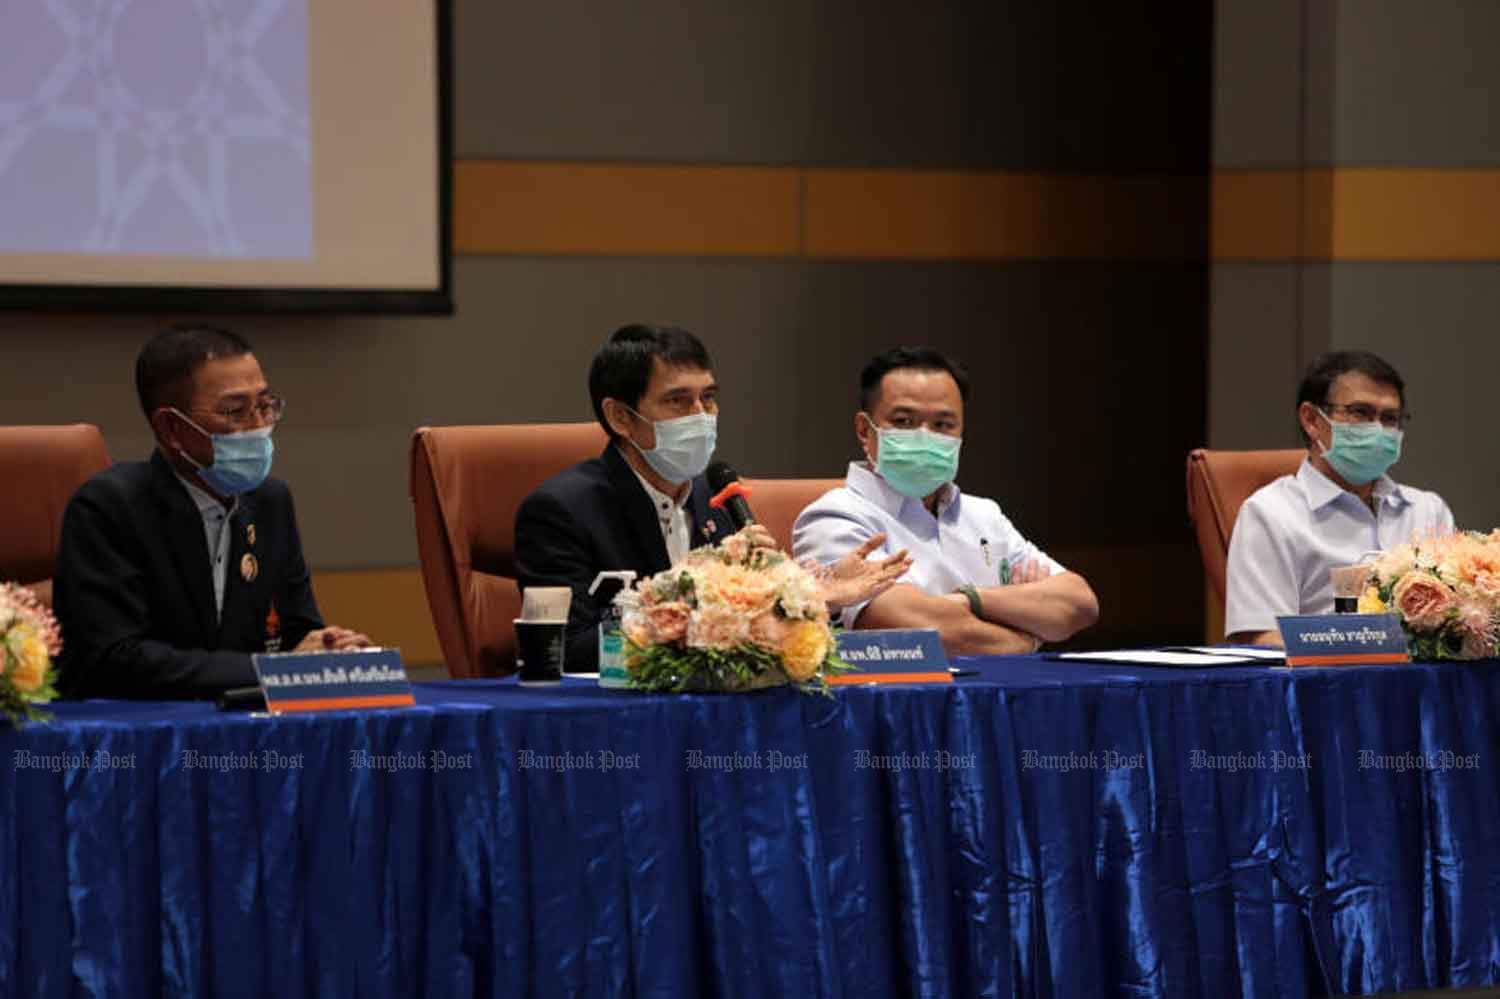 Nithi Mahanonda (centre left), secretary-general of the Chulabhorn Royal Academy, talks about Sinopharm's Covid-19 vaccine it is importing from China, in Bangkok on May 28. (File photo)